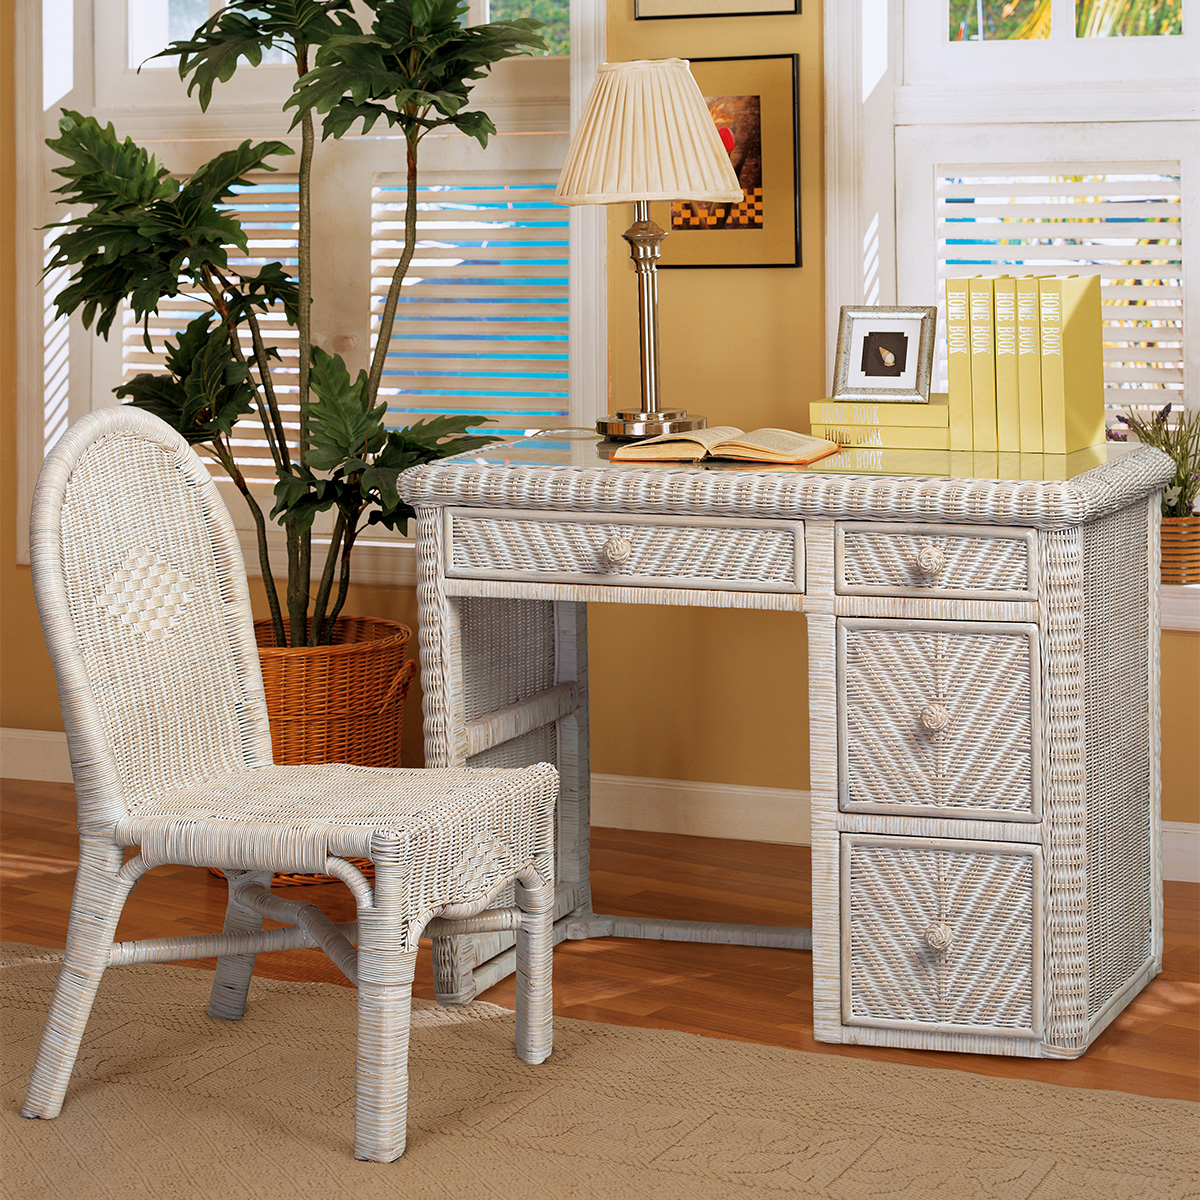 Desk And Chair Set Santa Cruz Computer Desk Chair Set In White Wash Wicker By Sea Winds